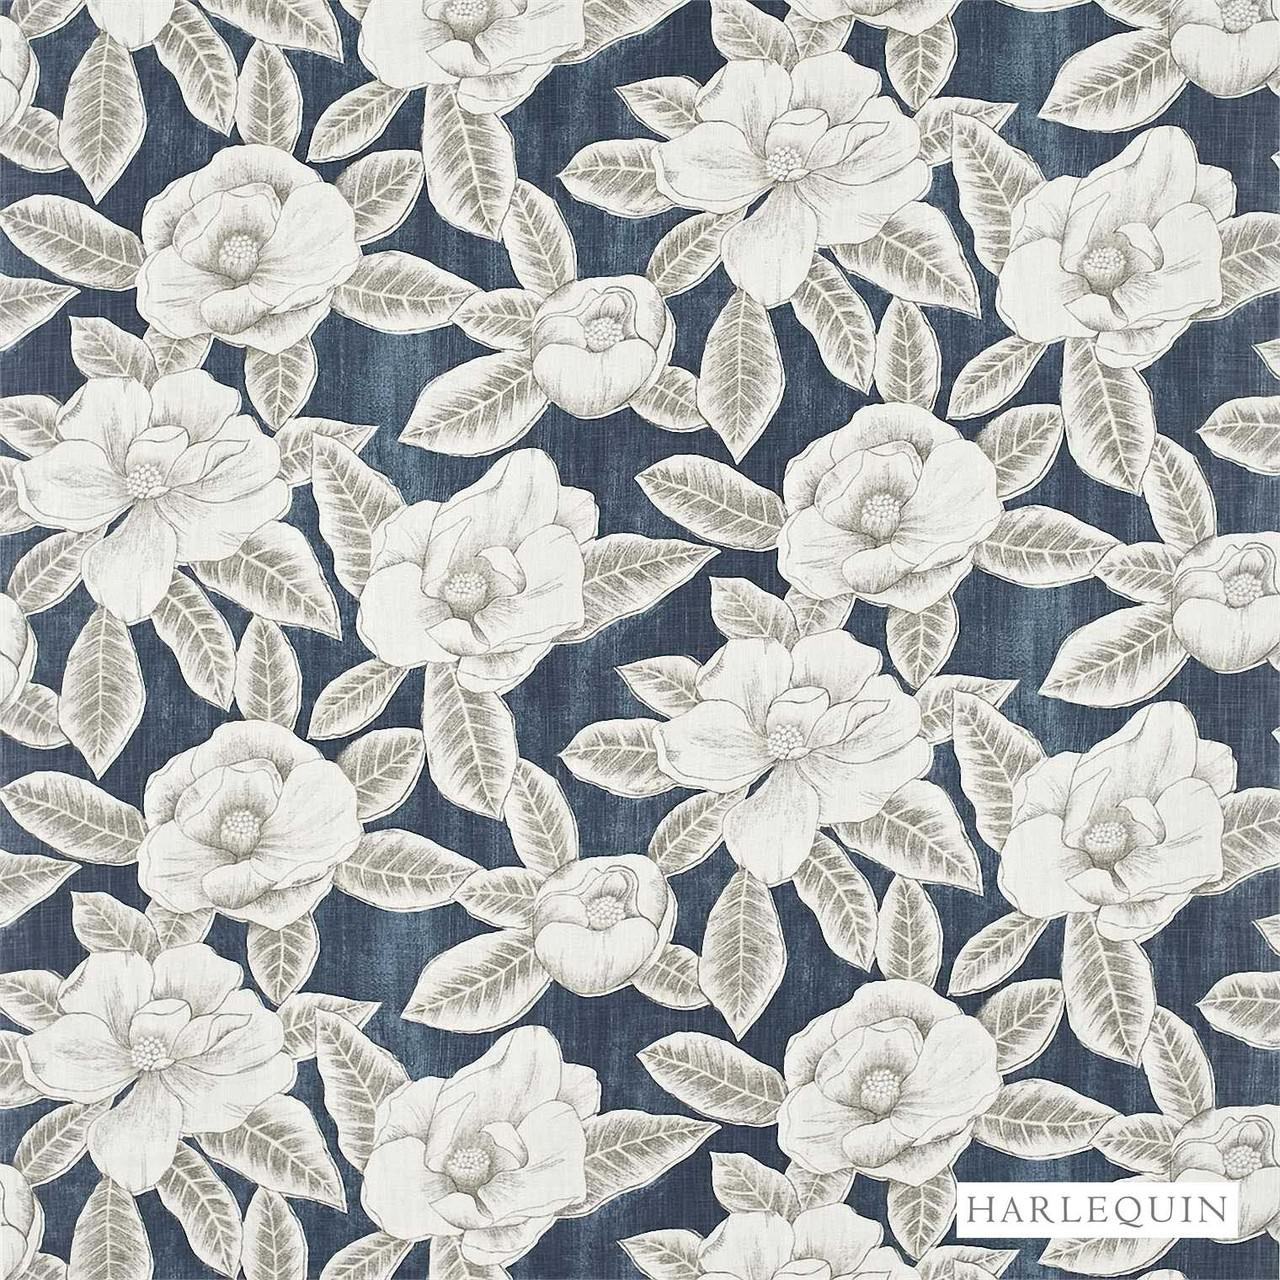 Harlequin Floria 120242  | Upholstery Fabric - Blue, Contemporary, Fibre Blends, Floral, Garden, Harlequin, Commercial Use, Domestic Use, Standard Width